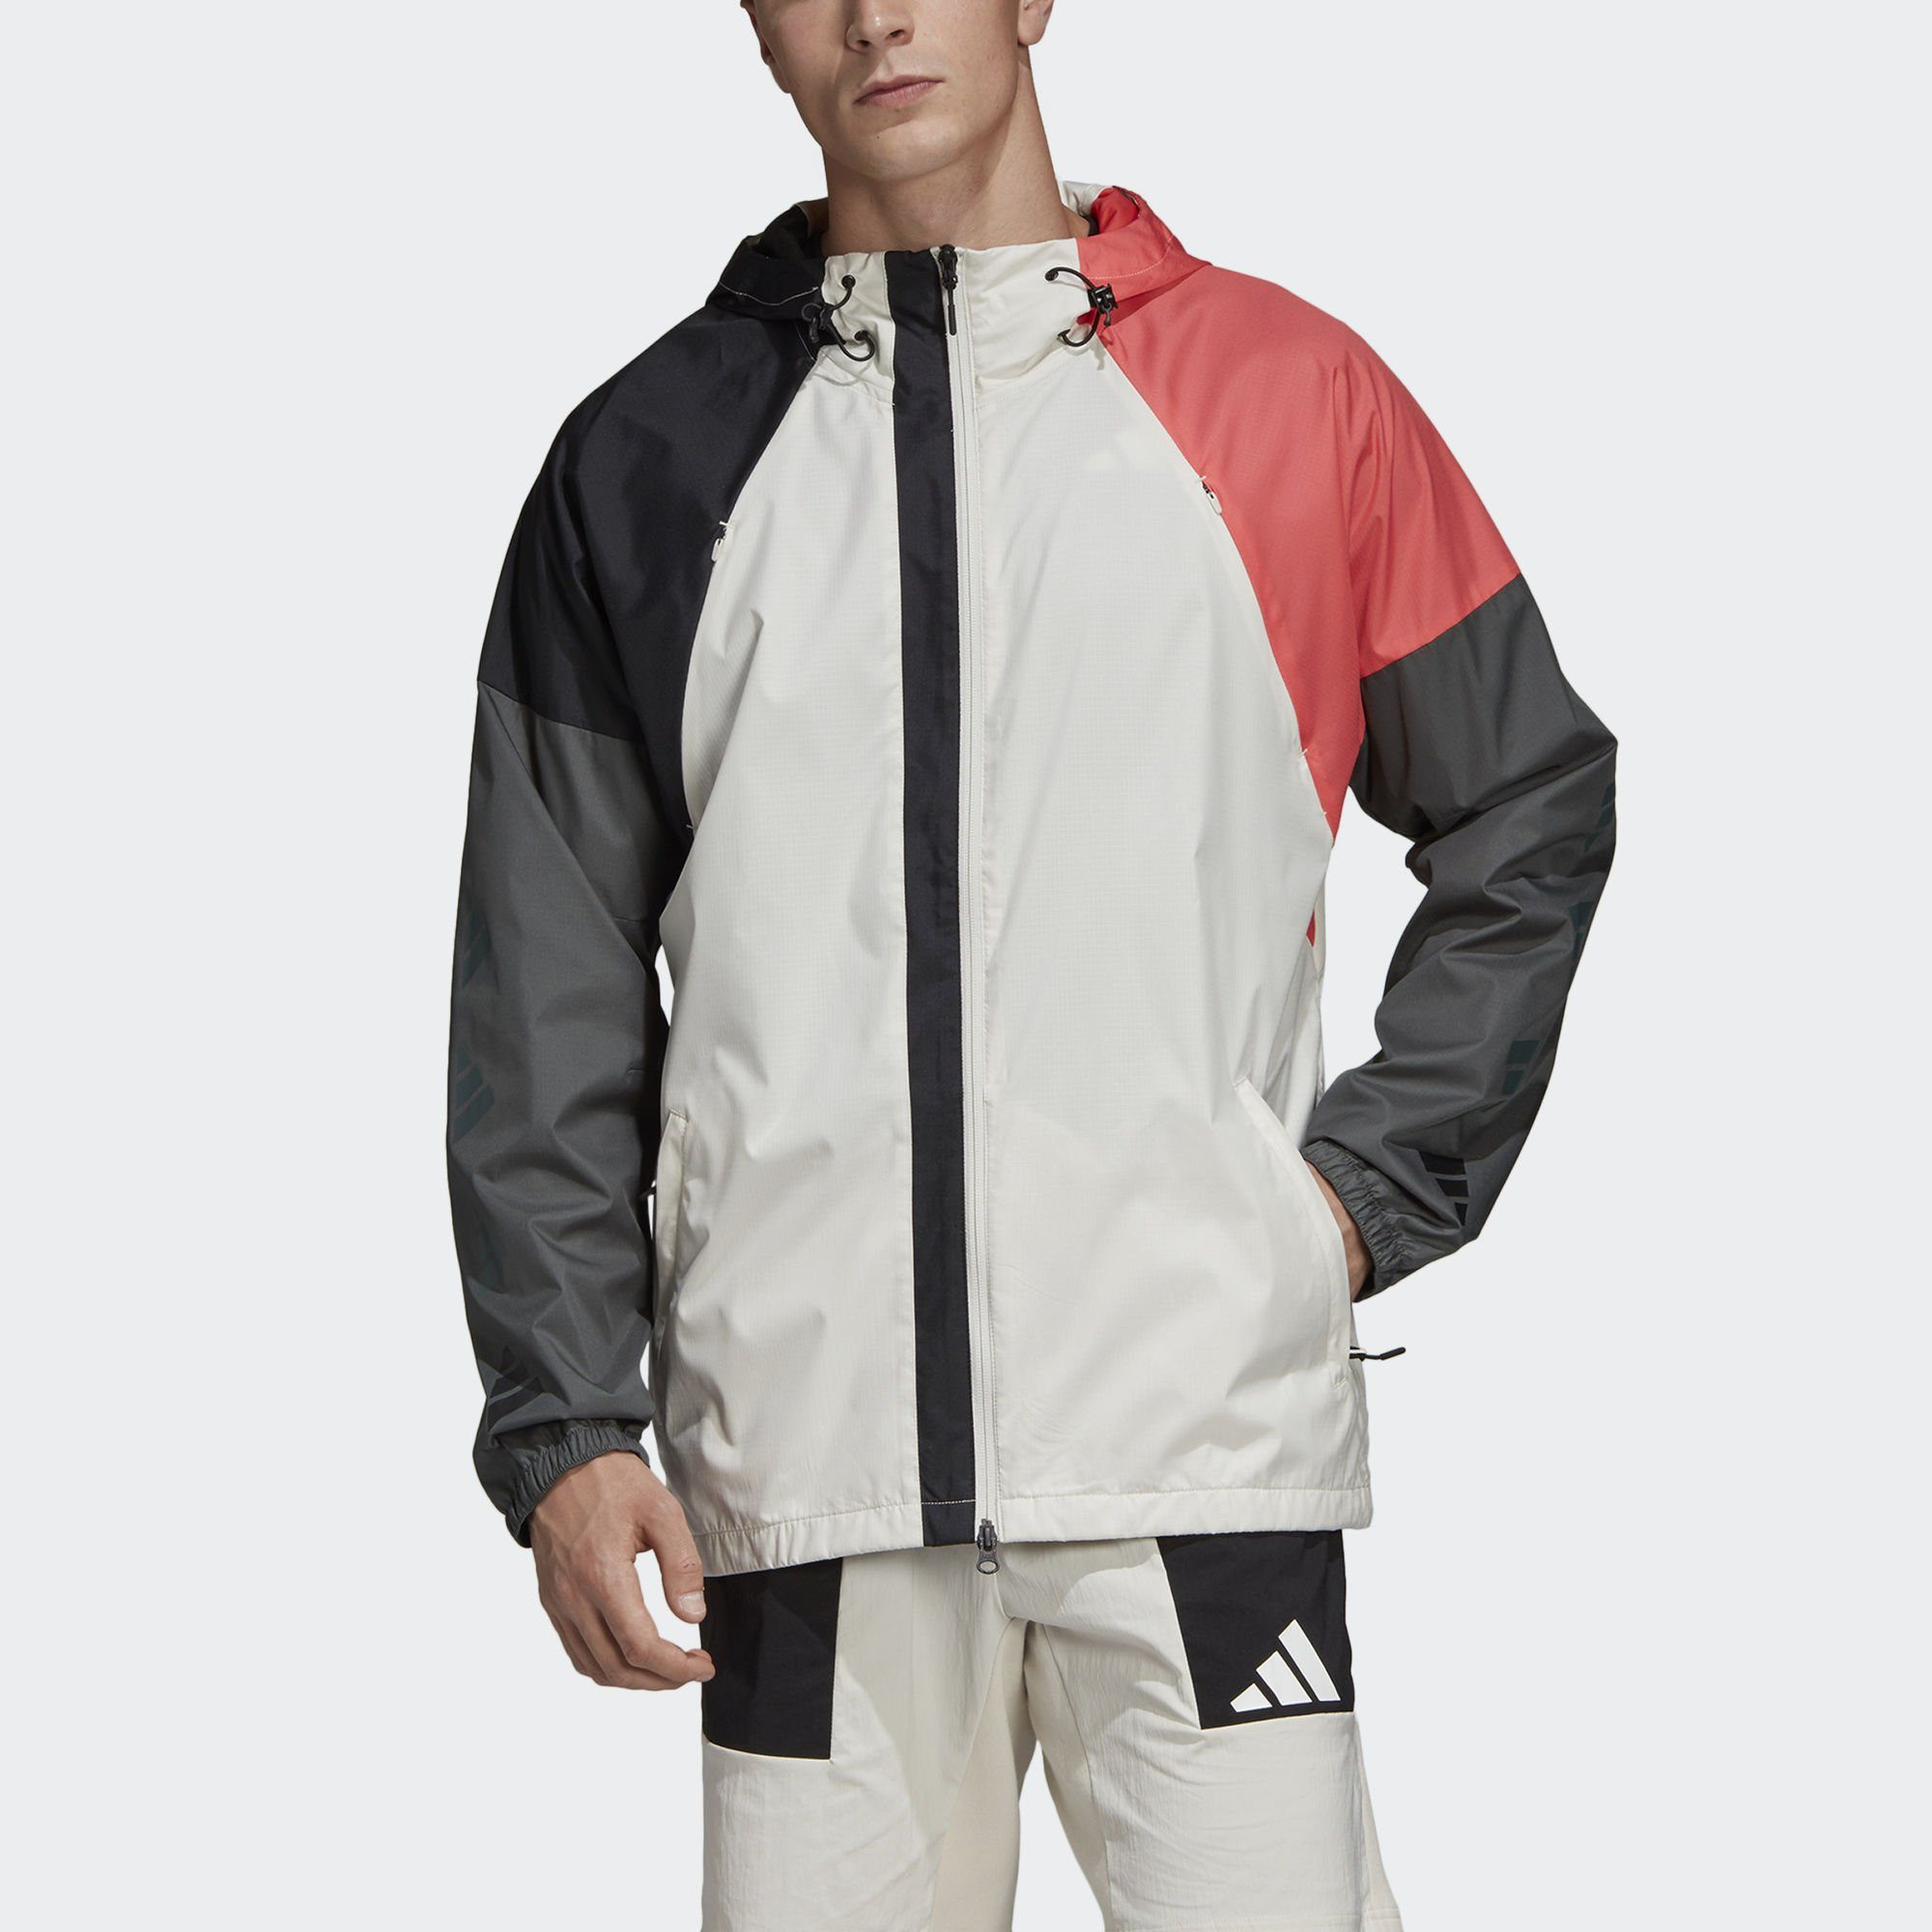 adidas Performance Funktionsjacke »The Pack Windbreaker« The Pack;WND online kaufen | OTTO